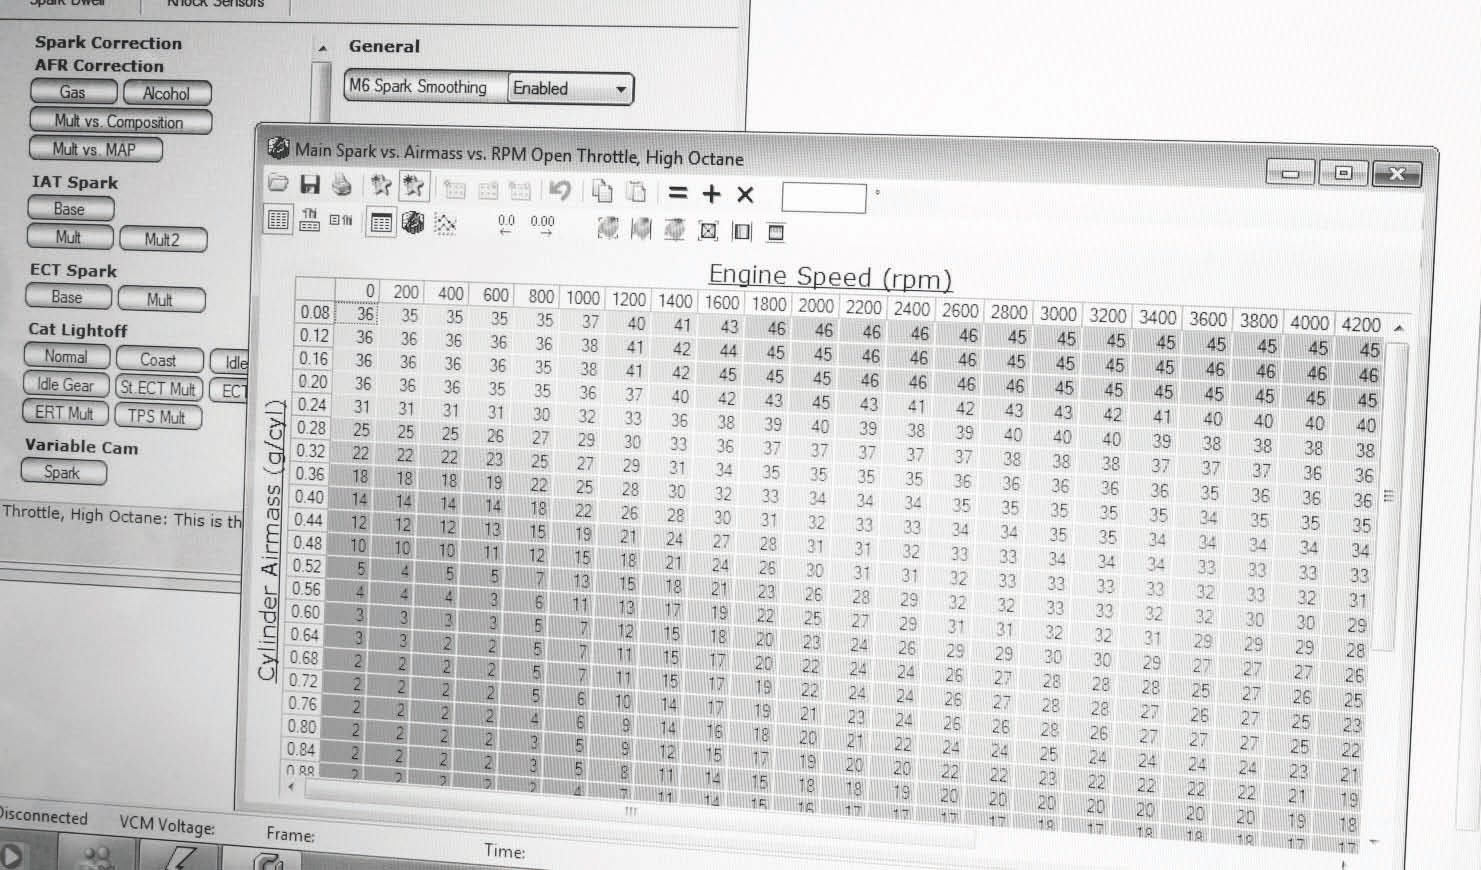 Here's an example of an editable screen from HP Tuners' flash memory utility. When the tables are adjusted, the settings are saved and uploaded to the engine controller. It then directs the engine and/or transmission as programmed. Knowing which values to change and what to change them to is the trick of tuning. An understanding of how the values affect the engine and transmission is necessary before modifying them.